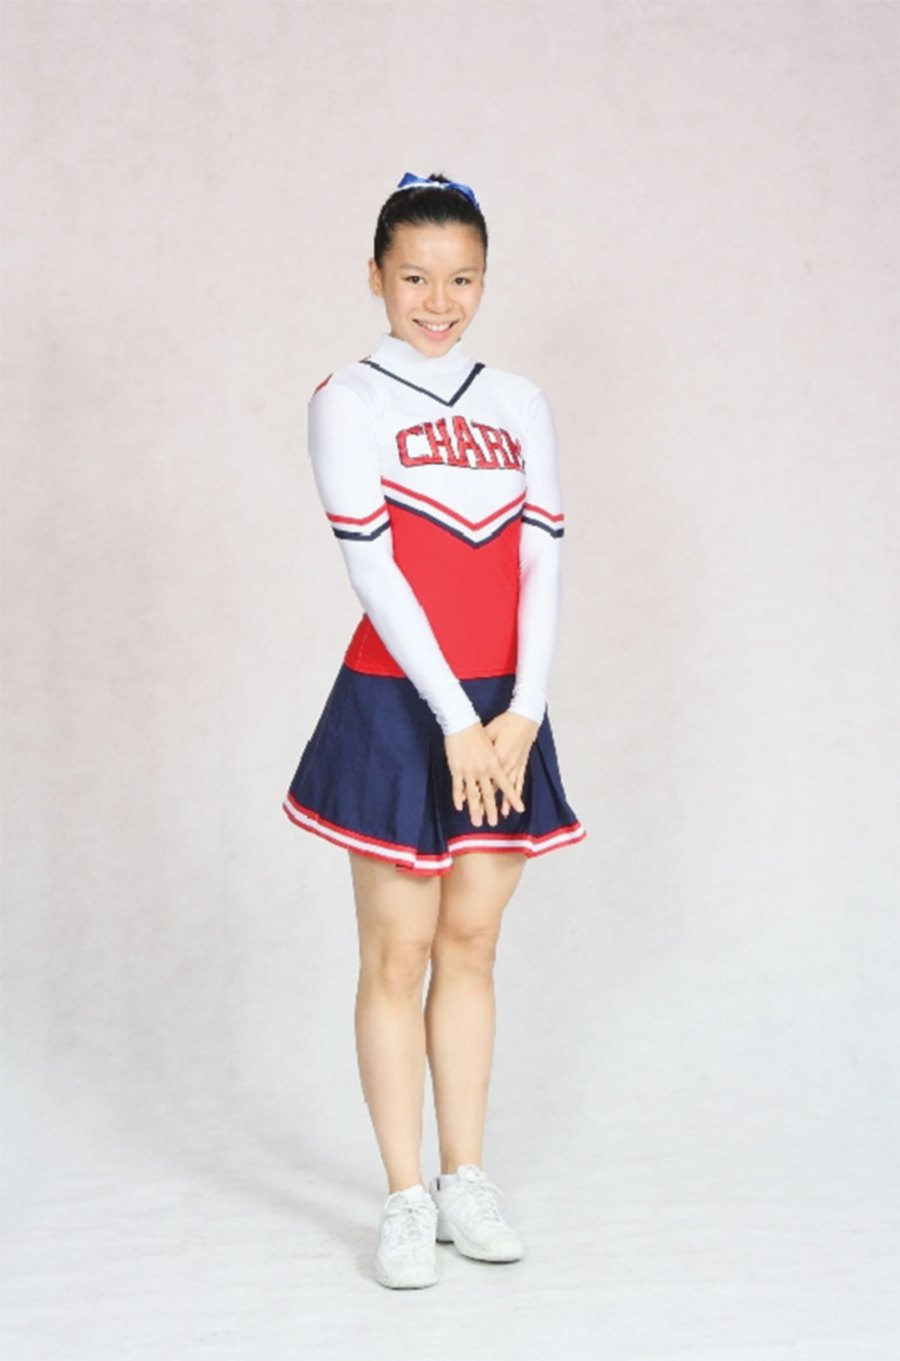 Tan during her cheerleading days.